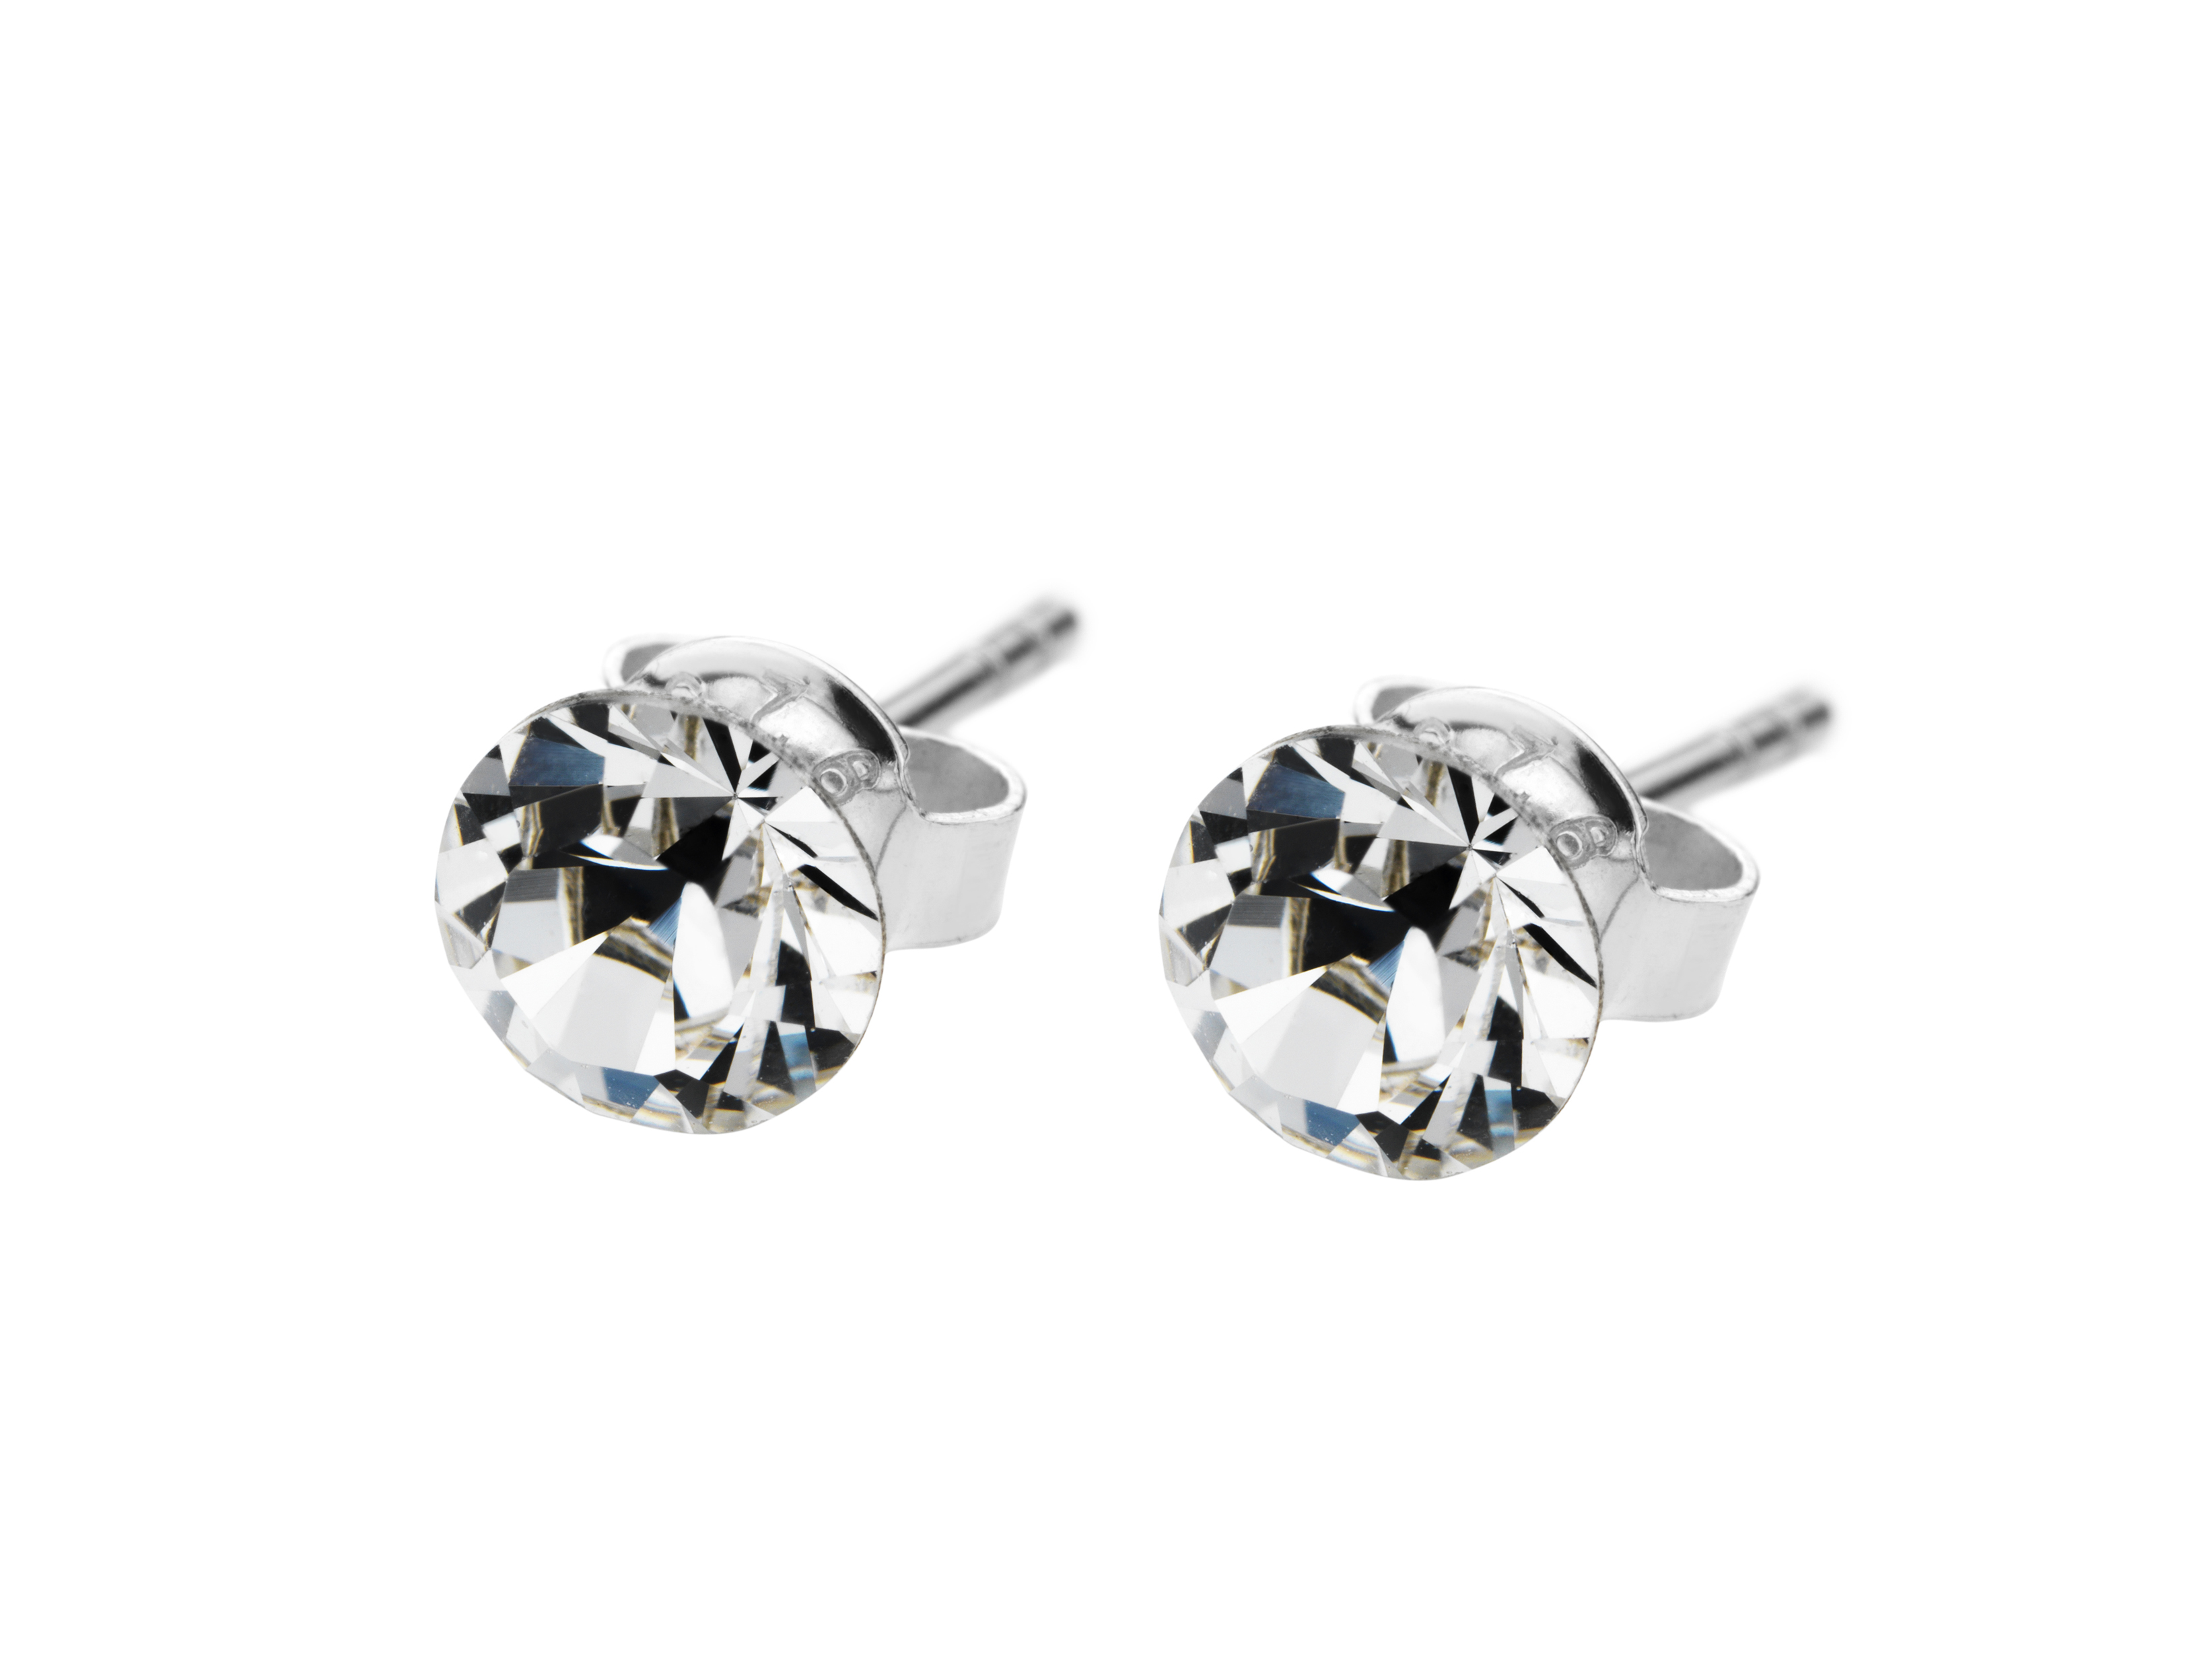 Solo Stud Earrings, White Gold Plated and Made with Swarovski Elements